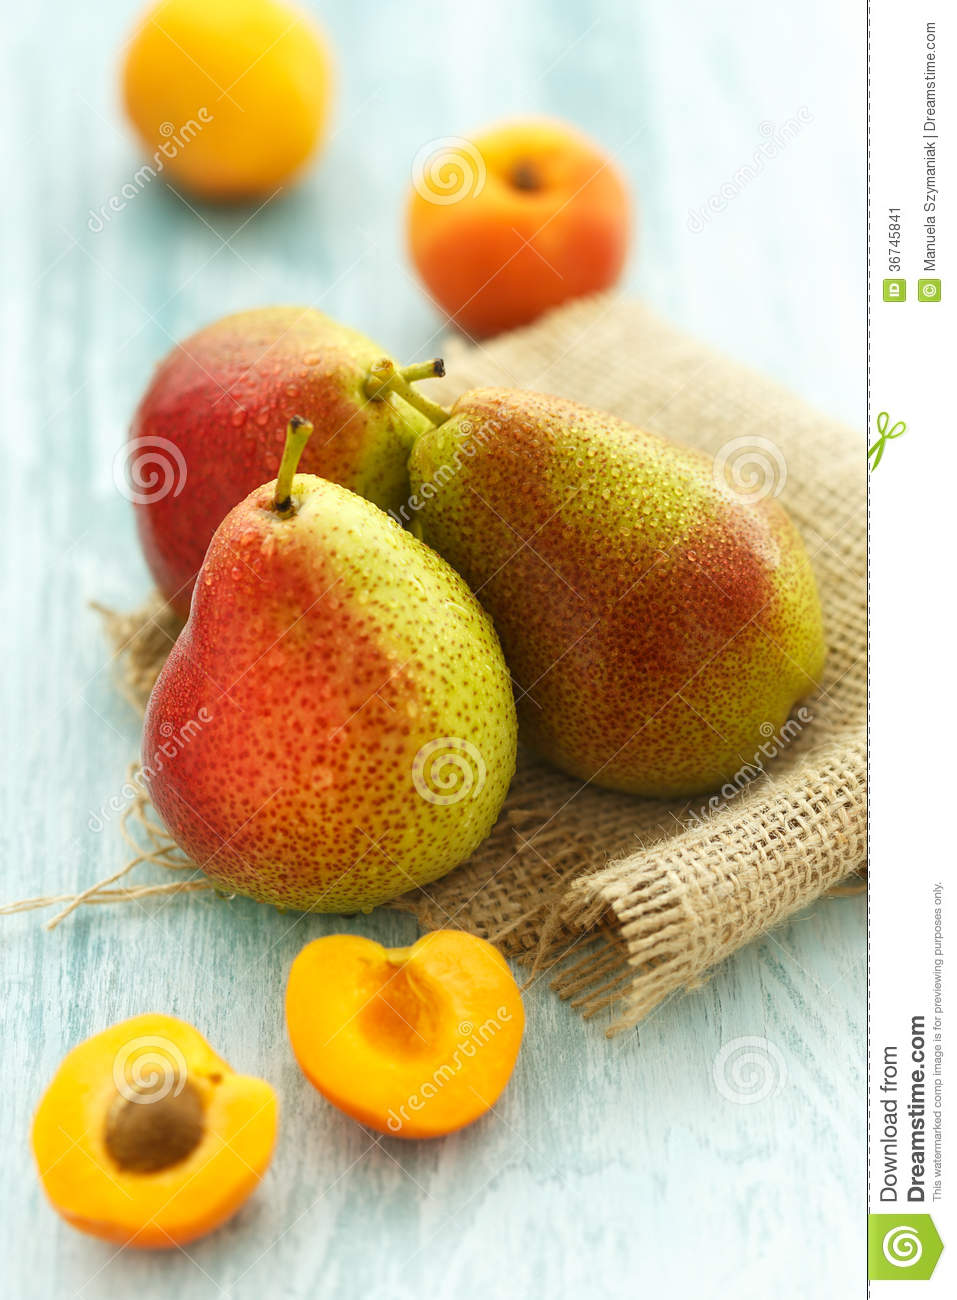 Fresh apricots and pears